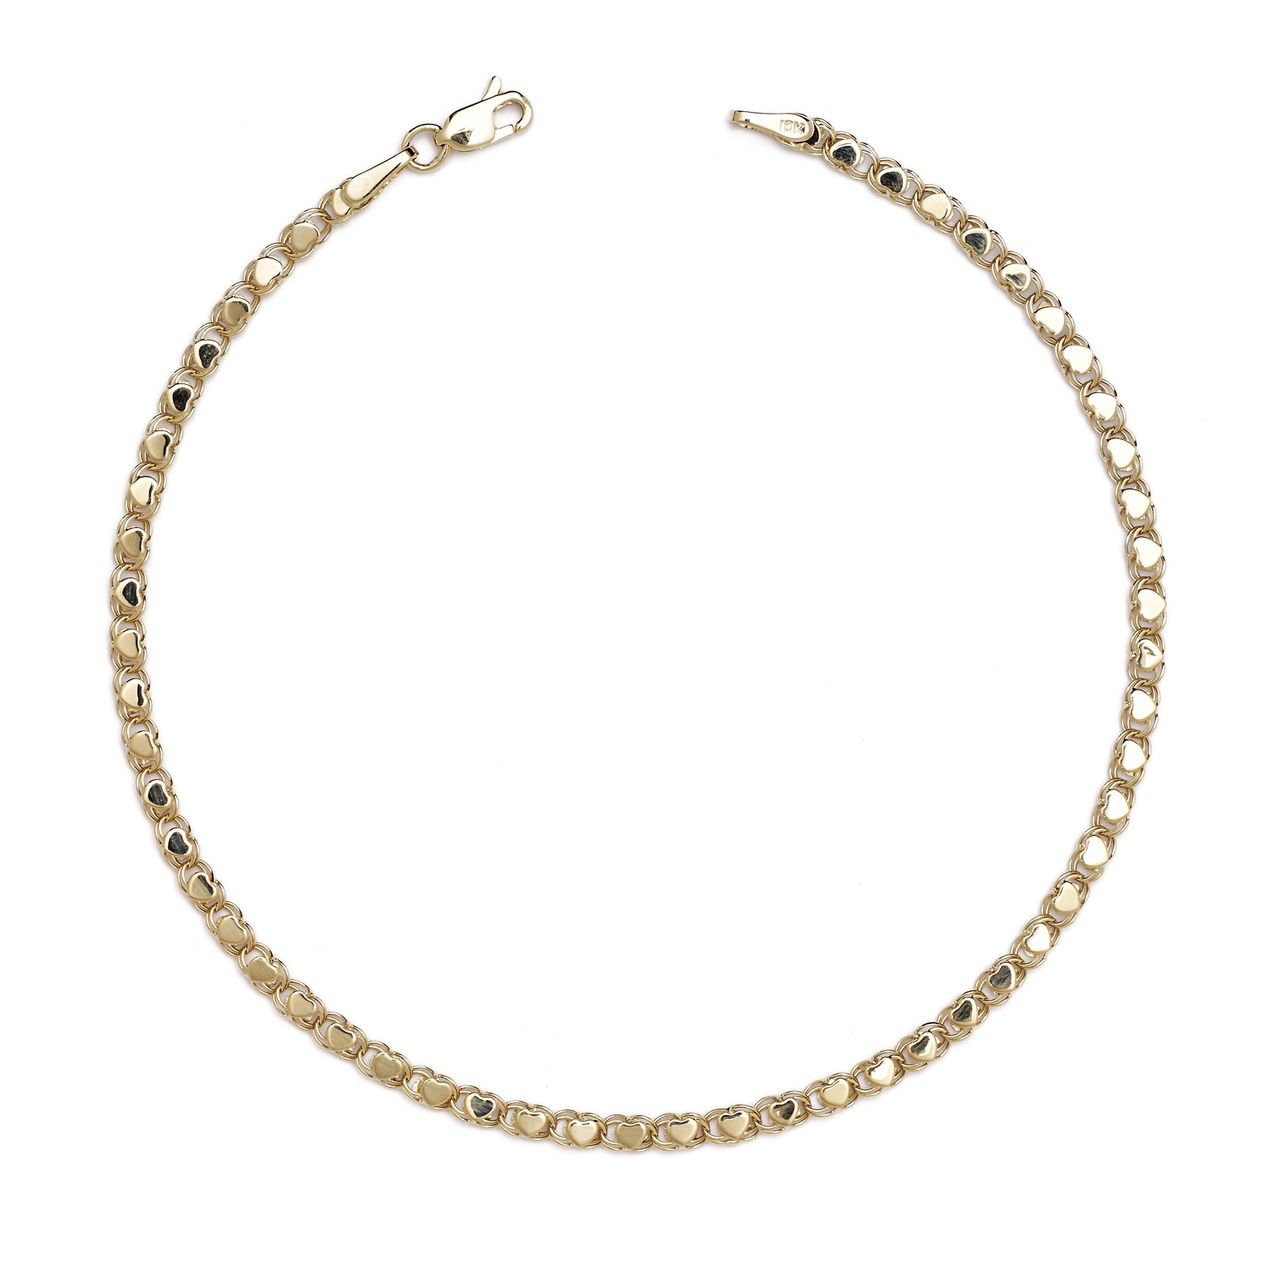 de beers chain anklet diamond bangles white first one bracelet category ankle jewellery gold my bracelets